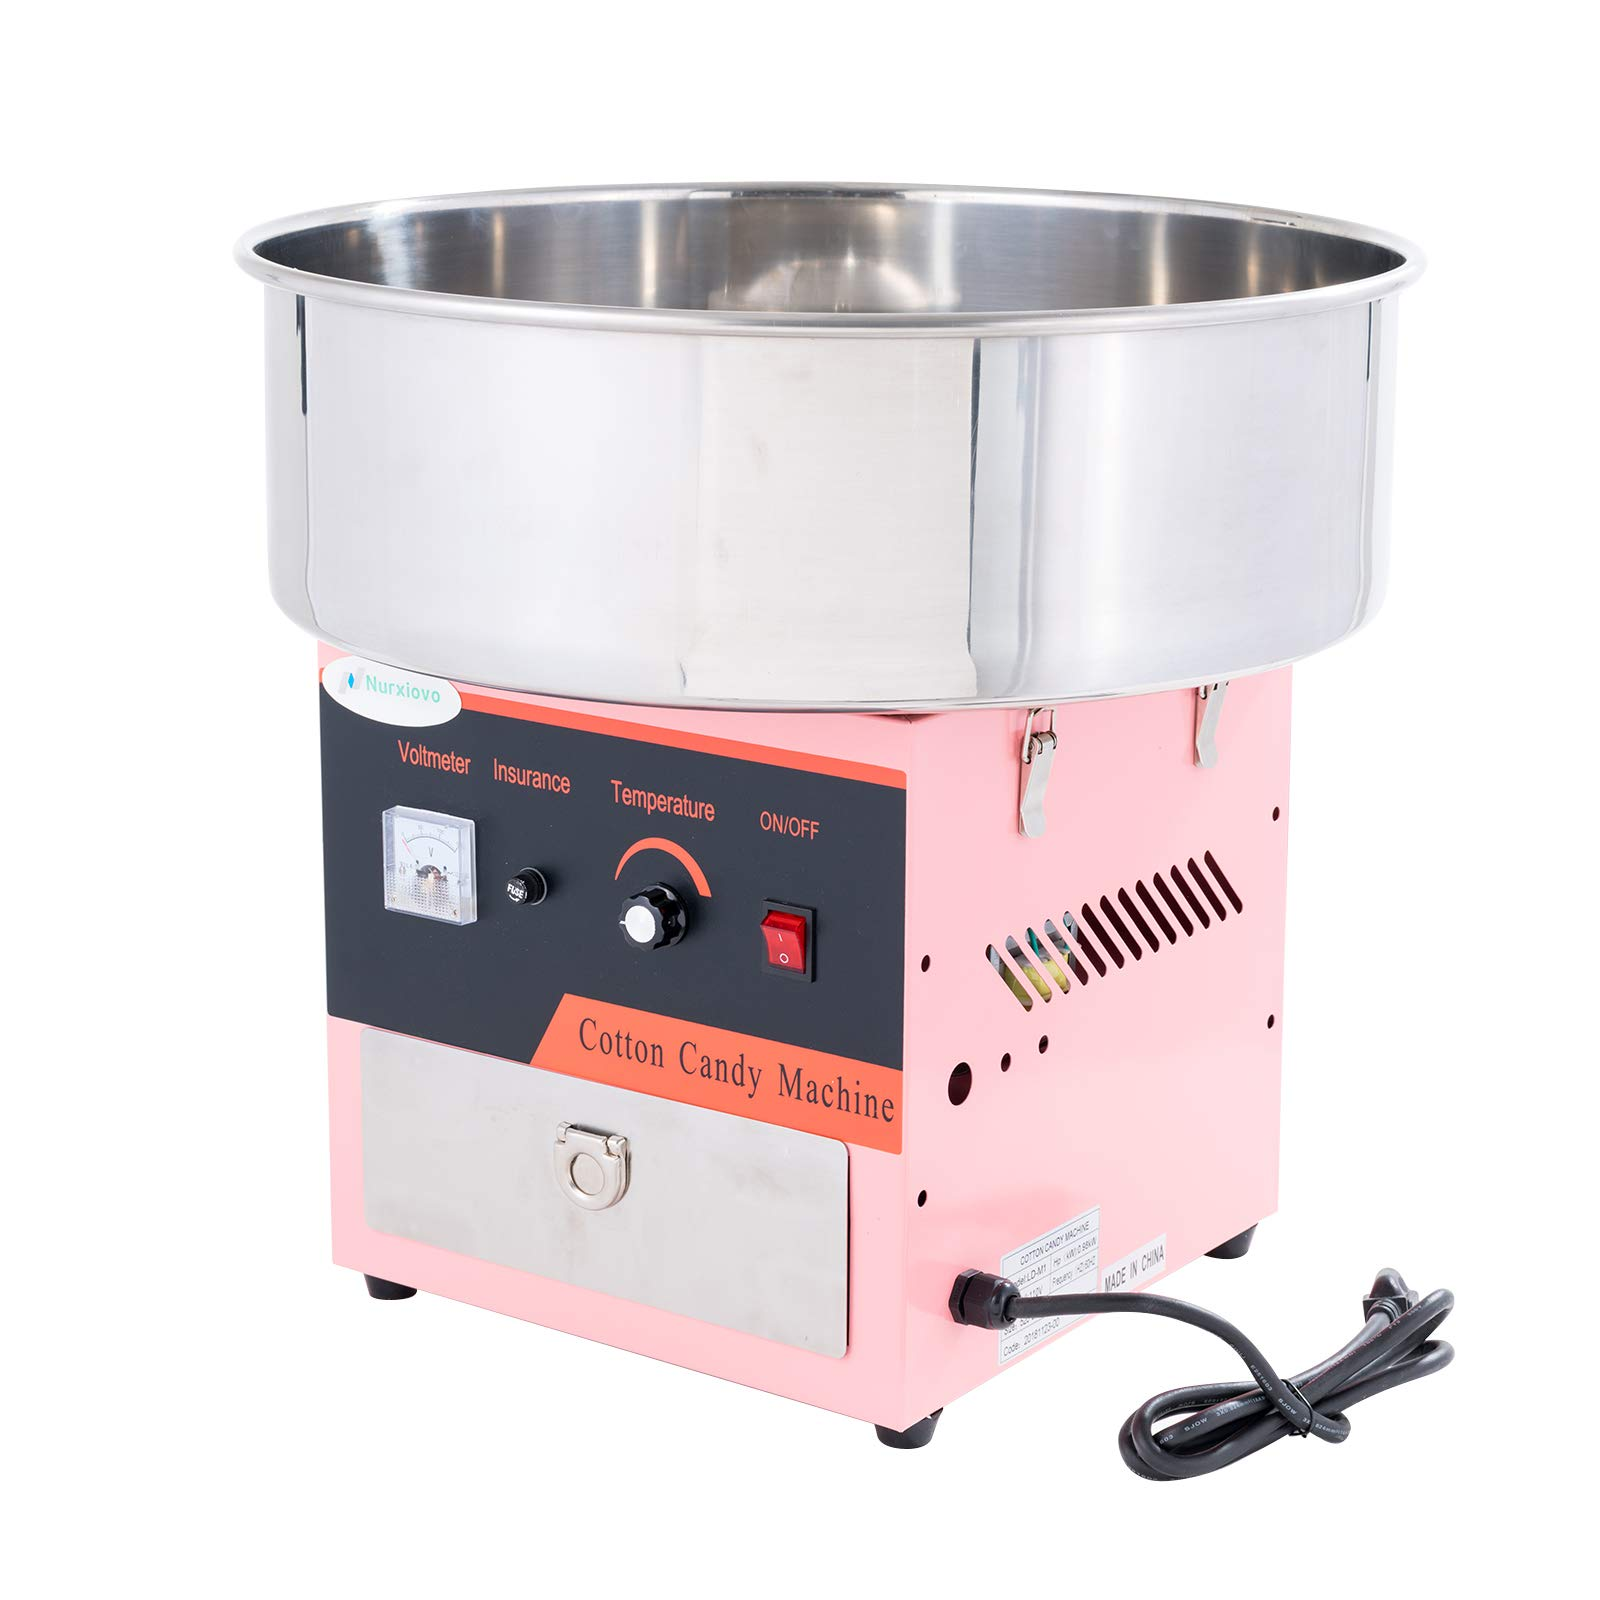 20'' Commercial Electric Cotton Candy Machine Candy Floss Maker with Sugar Scoop and Big Drawer Pink